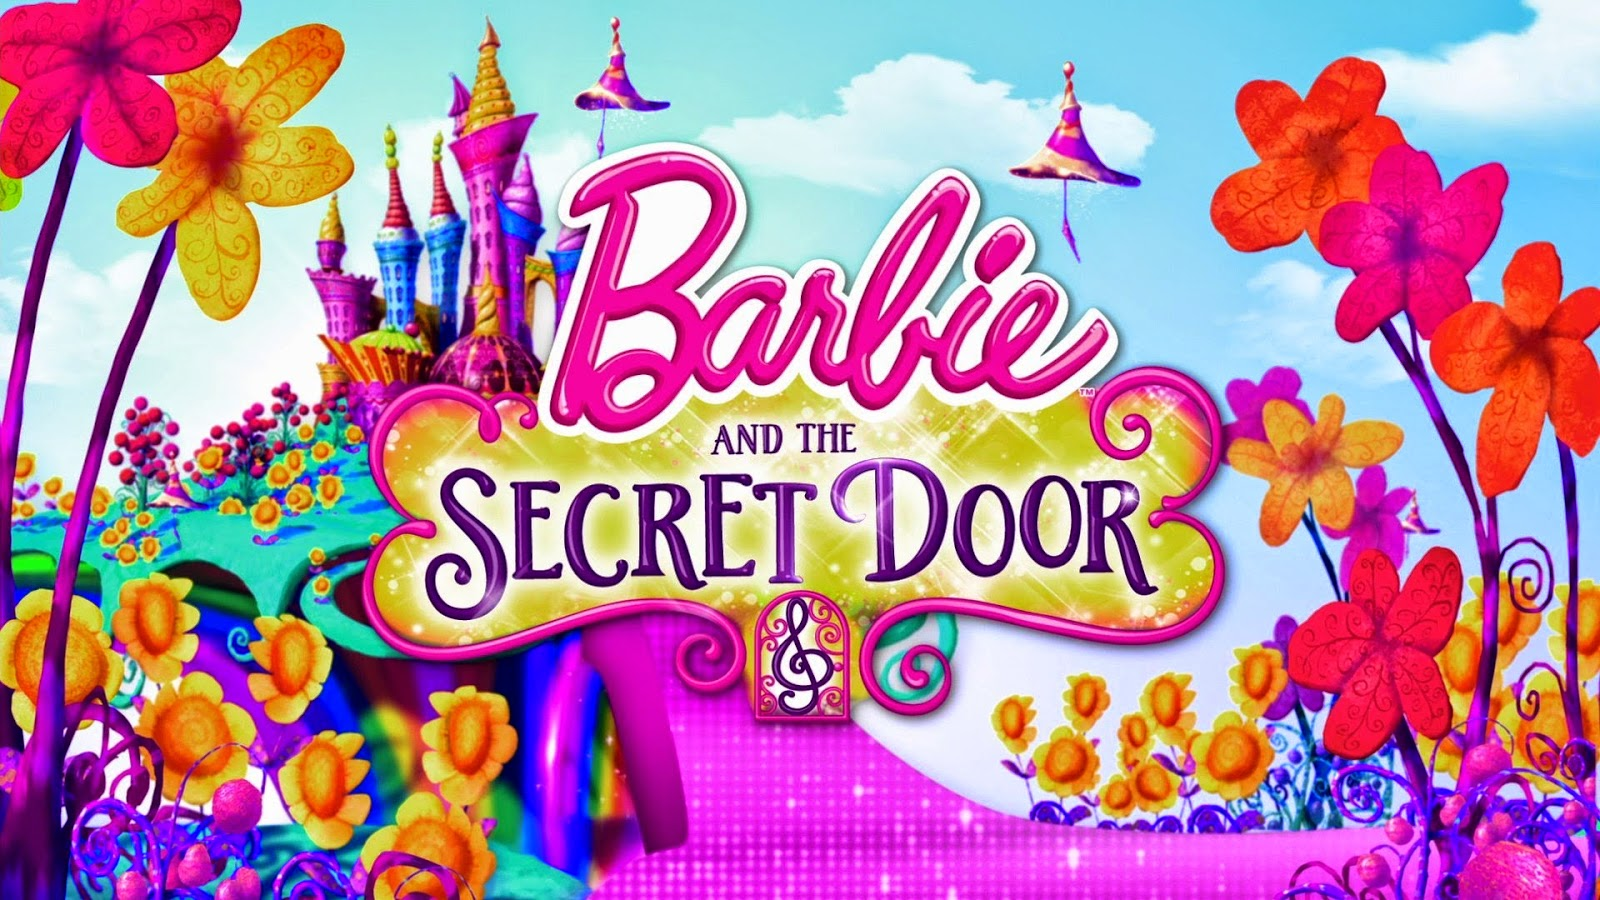 Click here to barbie and the secret door 2014 full movie online free